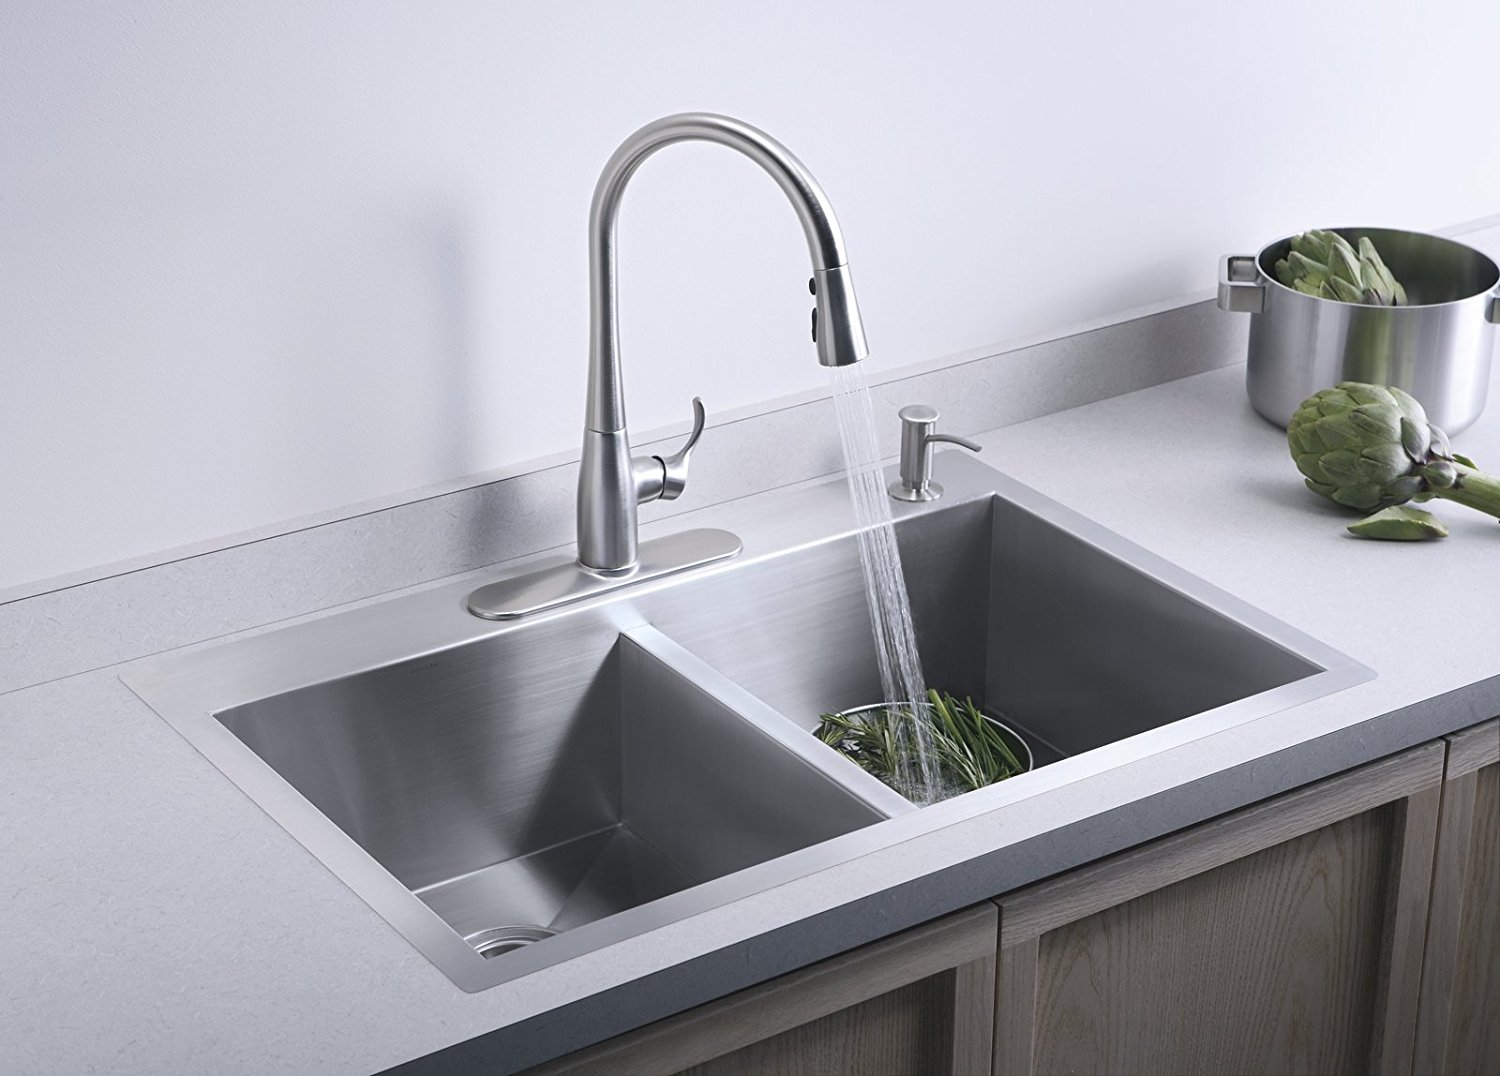 Kohler K 3820 4 Na Double Basin Kitchen Sink With Four